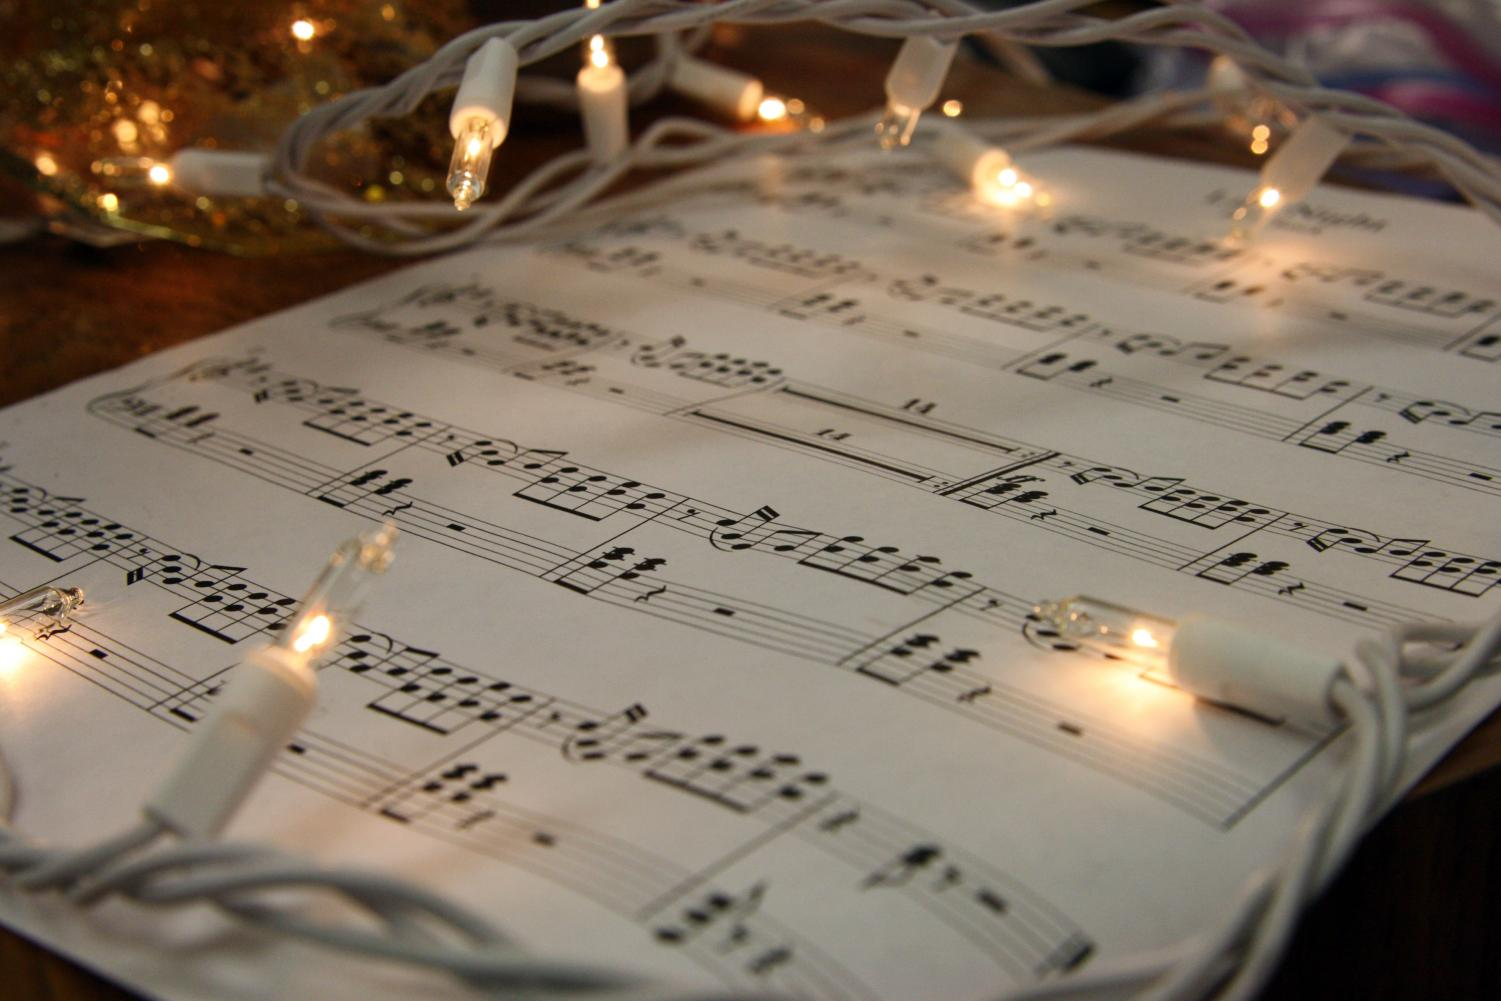 Music provides Christmas spirit around the holidays.